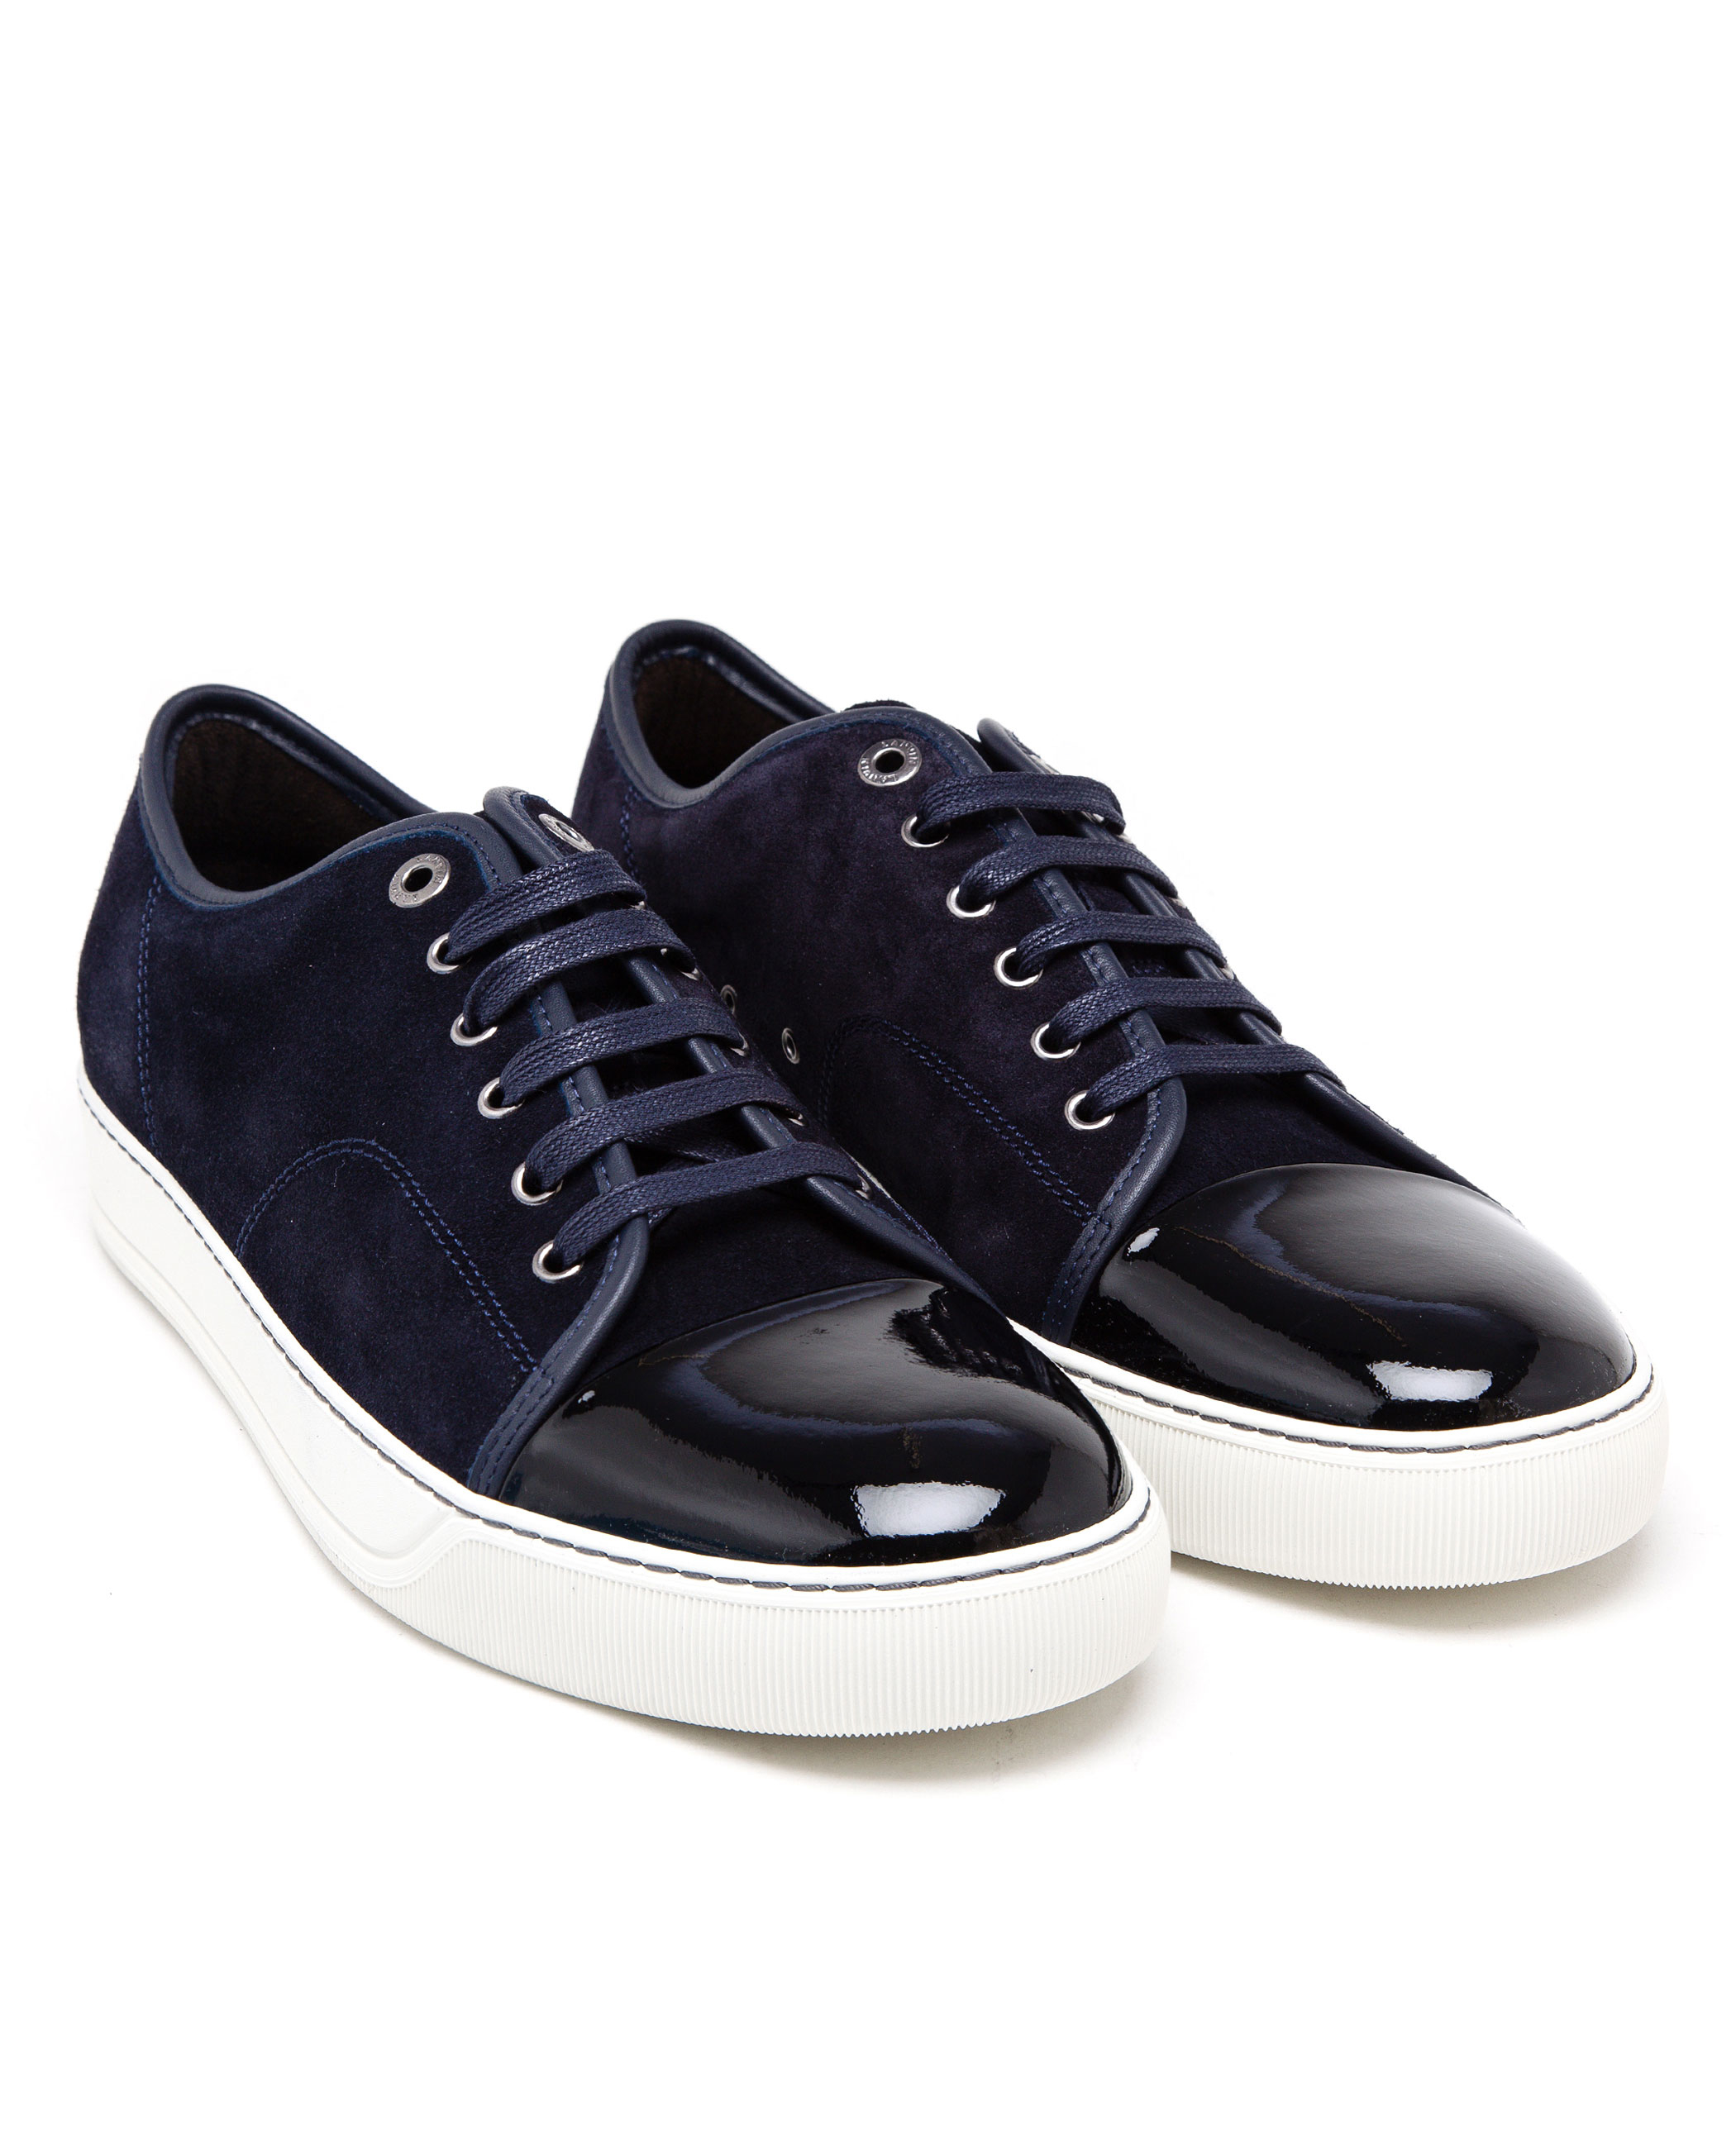 8d516f96f12b Lyst - Lanvin Suede And Patent Leather Sneakers in Blue for Men